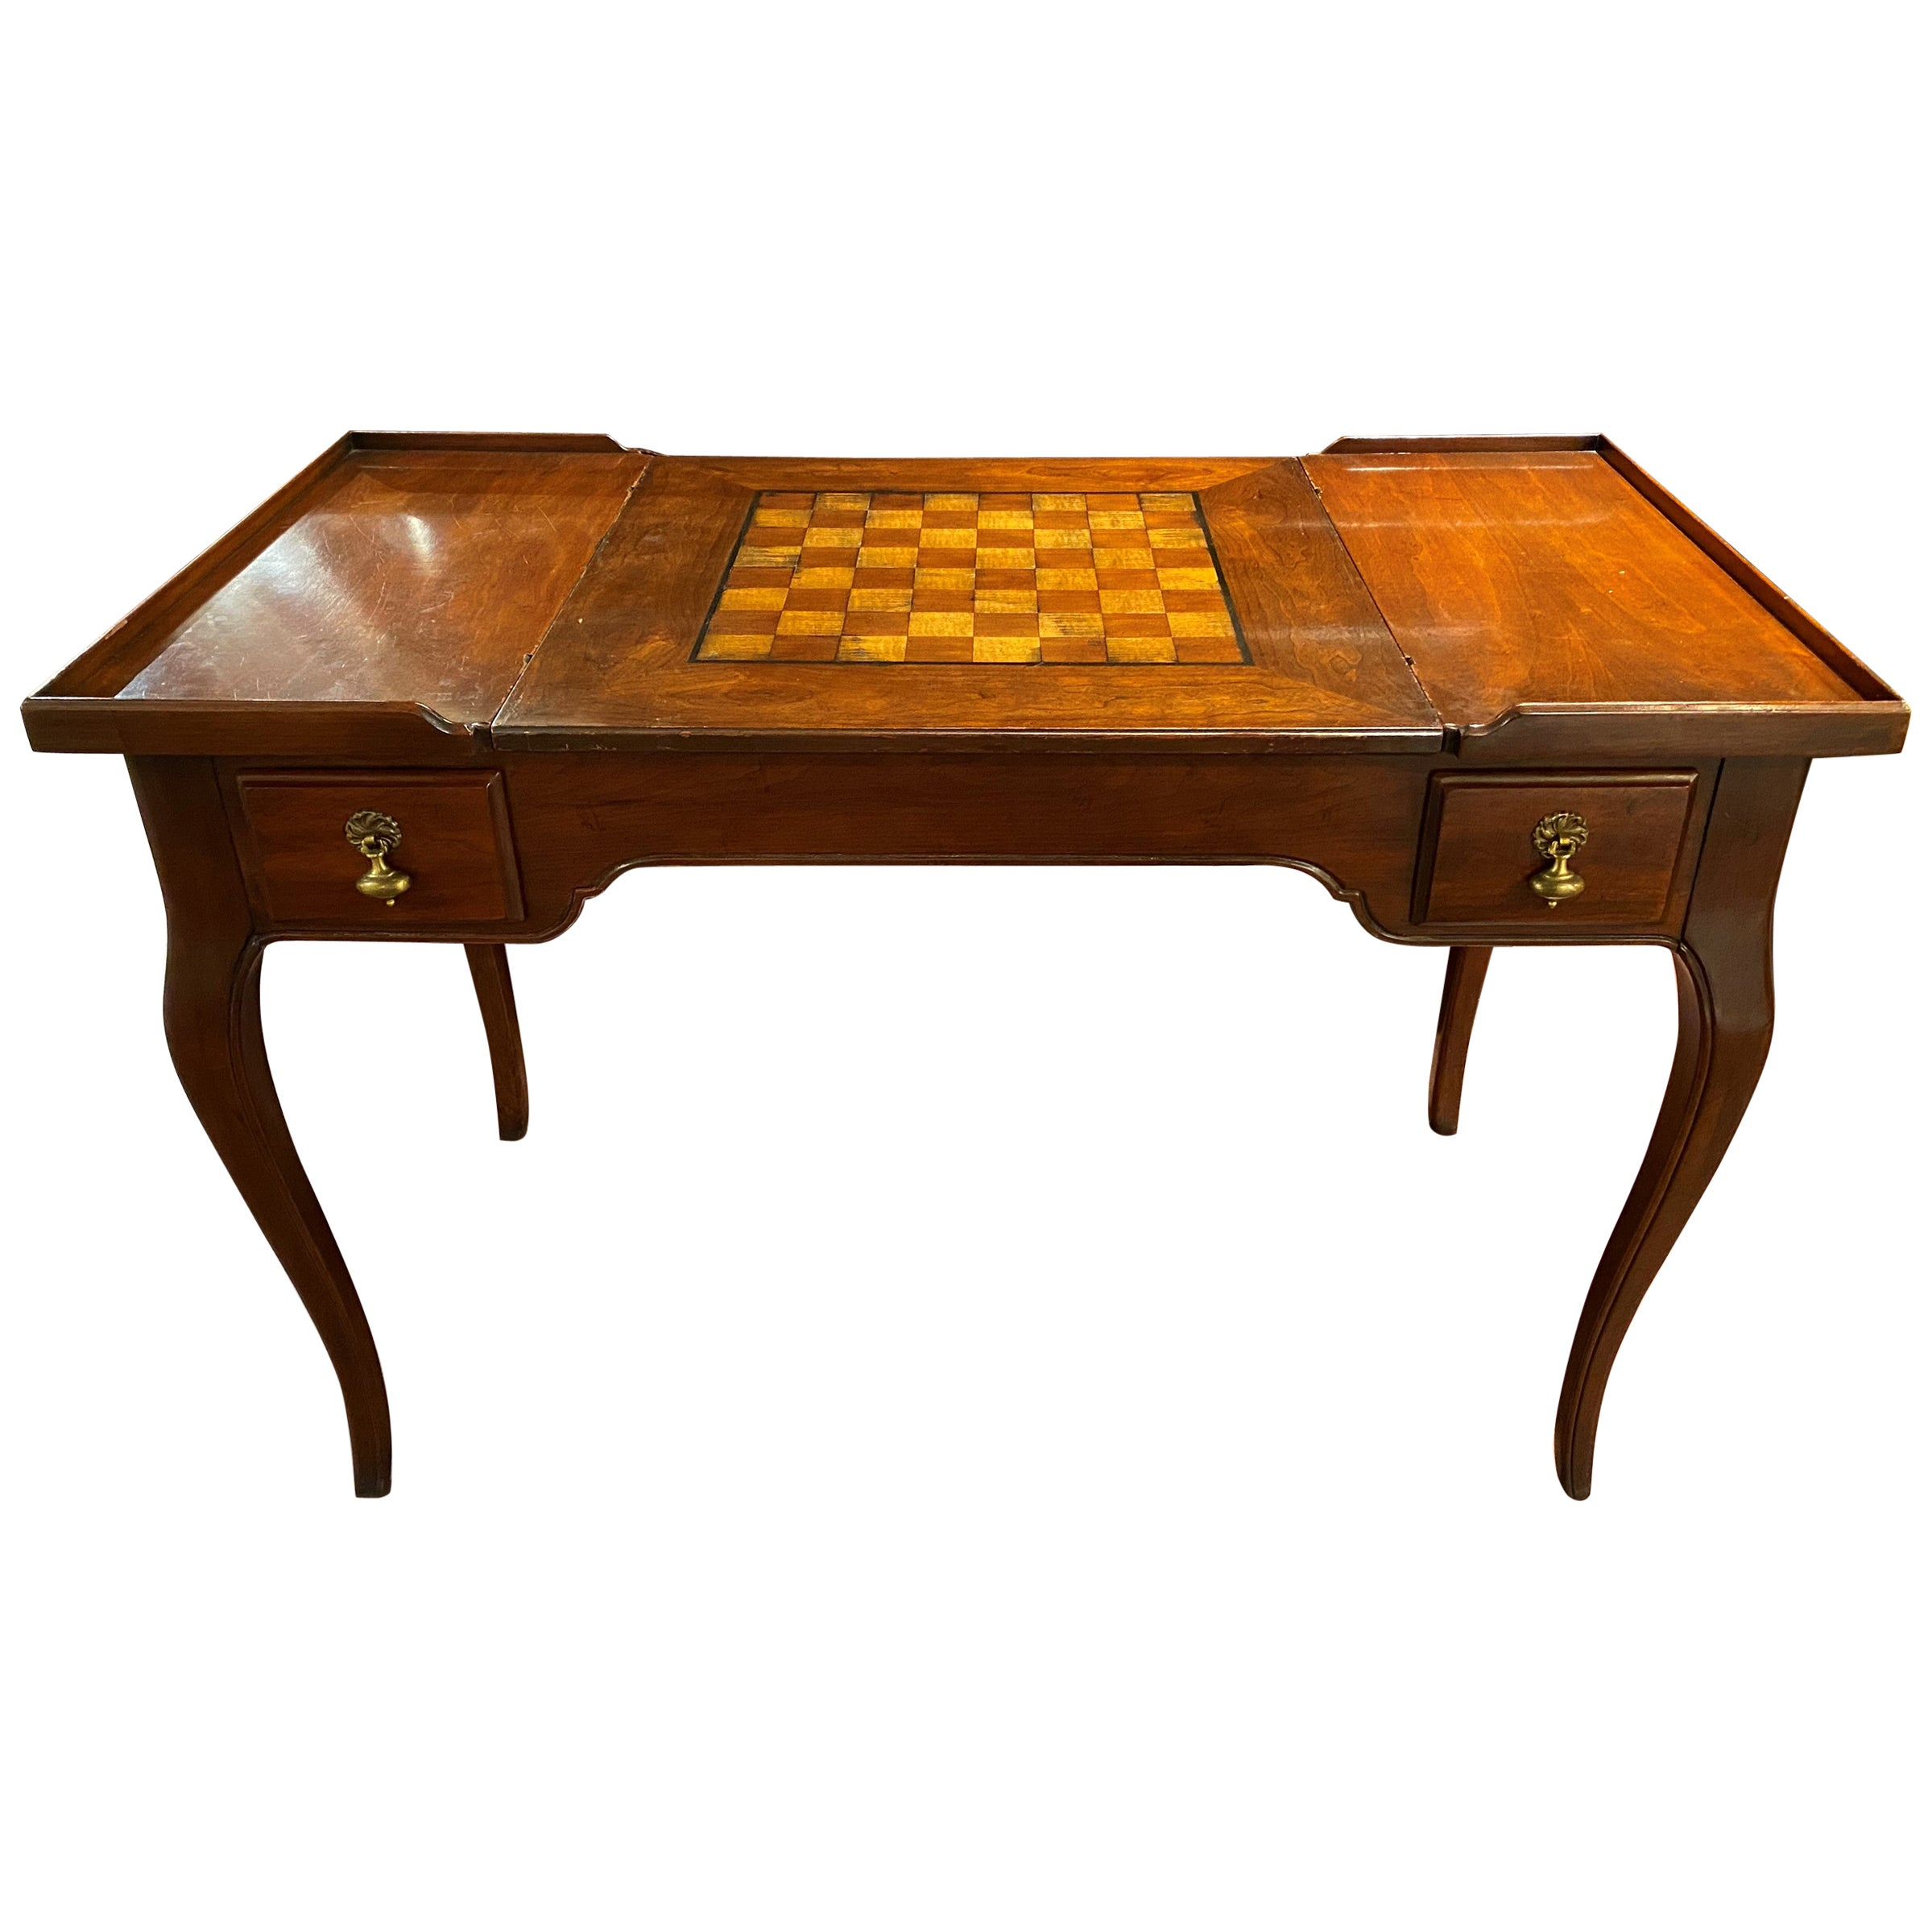 French Louis XV Style Gaming Table with Reversible and Removable Chessboard Top